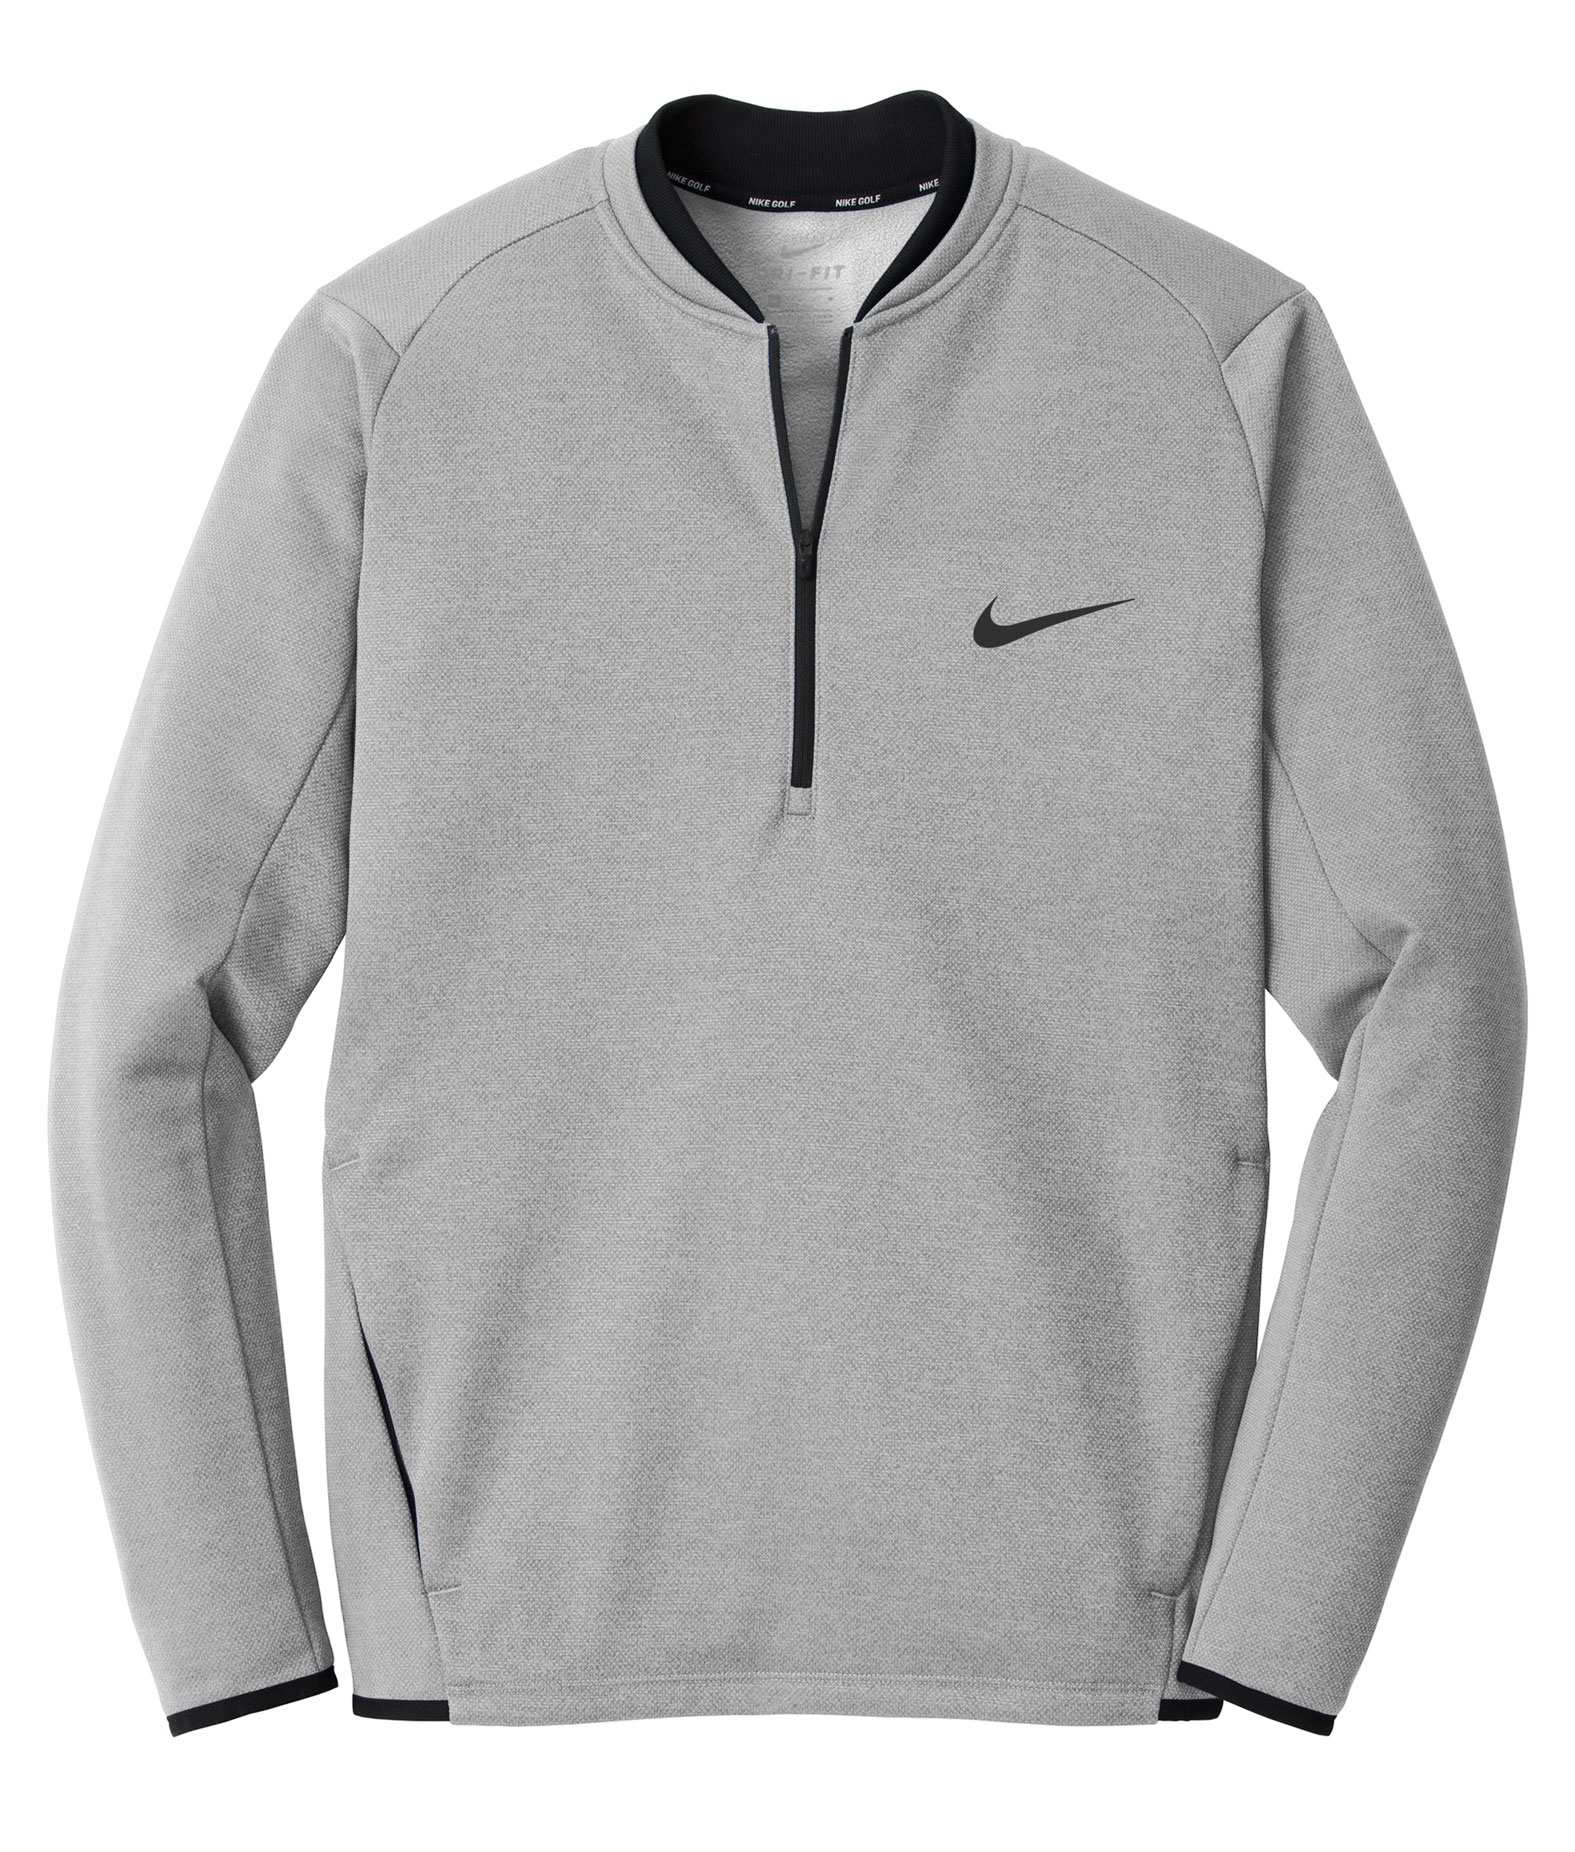 Nike Adult Therma-FIT Textured Fleece 1/2-Zip